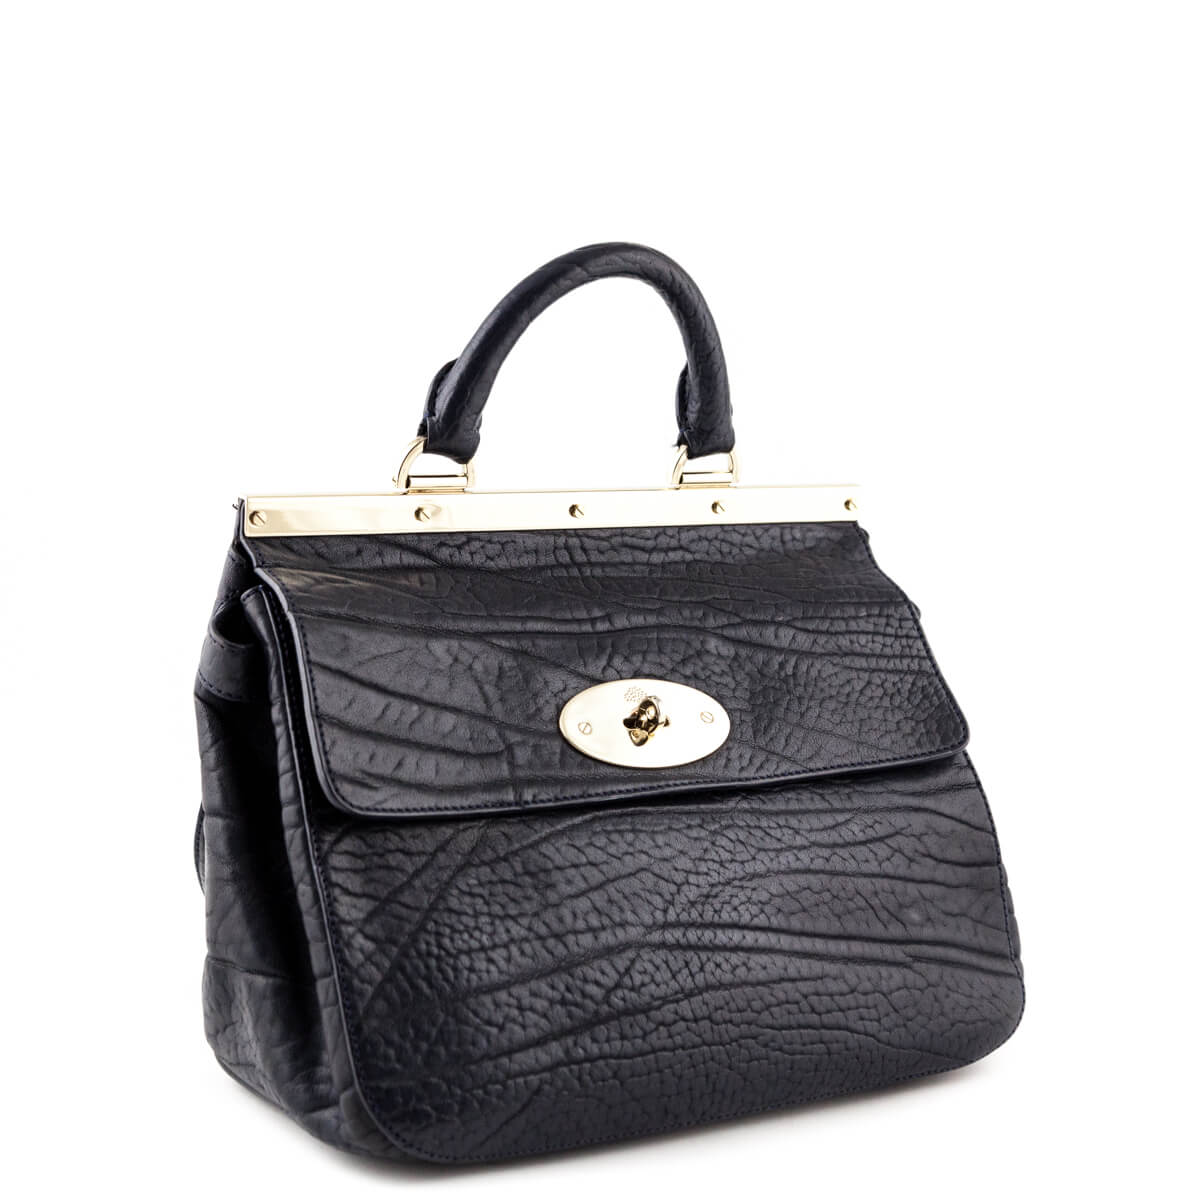 aae615c98d66 ... Mulberry Navy Calfskin Small Suffolk Satchel Bag - LOVE that BAG -  Preowned Authentic Designer Handbags ...